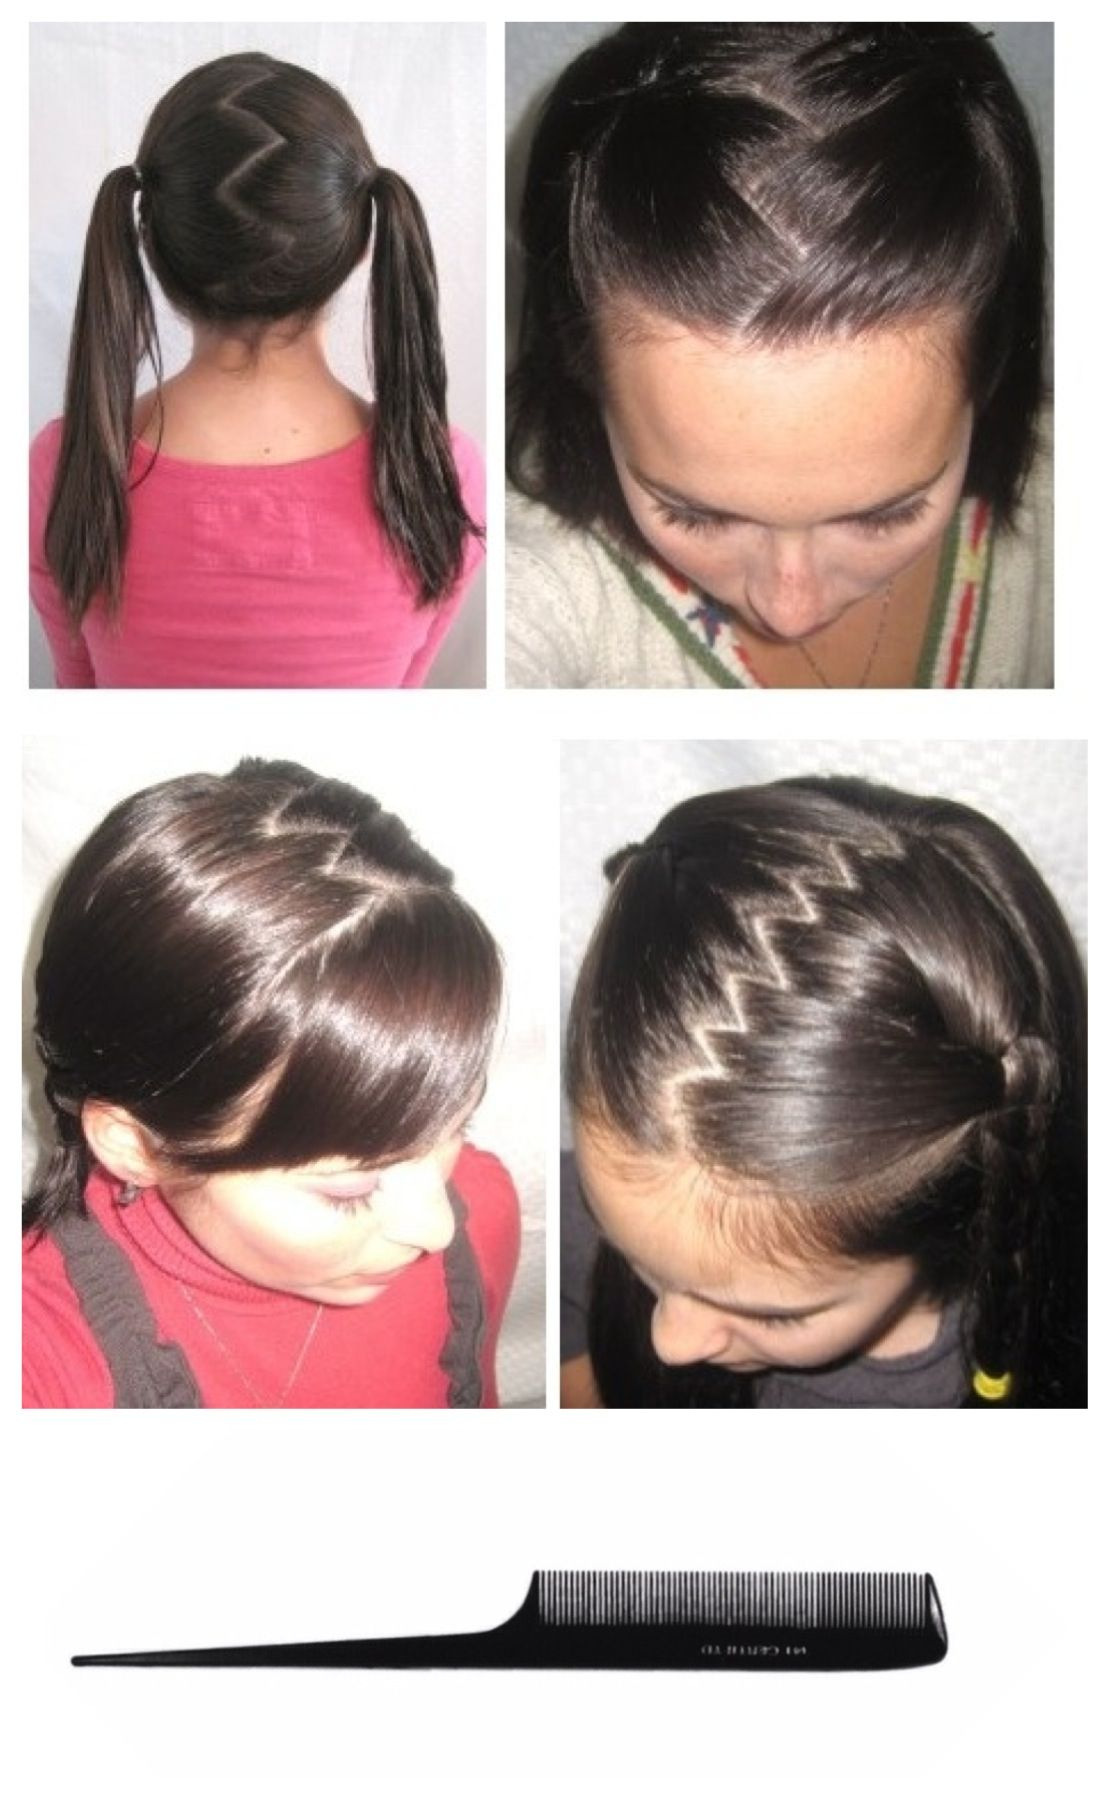 zig zag hair part - used 2 struggle